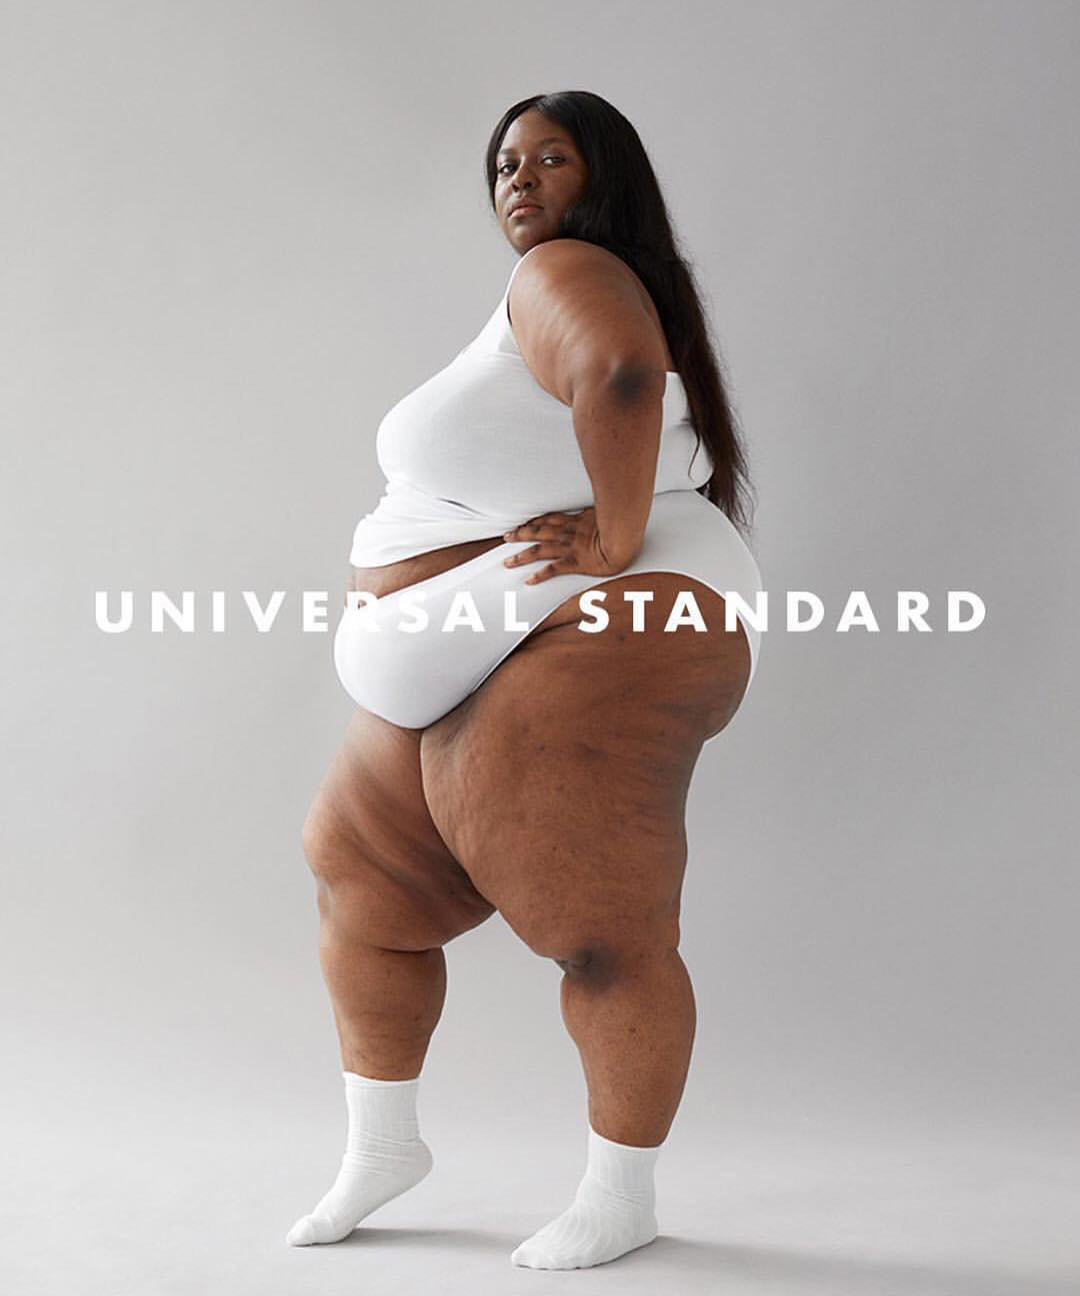 This Curve Model Posed in Her Underwear for the Most 'Powerful' Photo She's Ever Seen of Herself